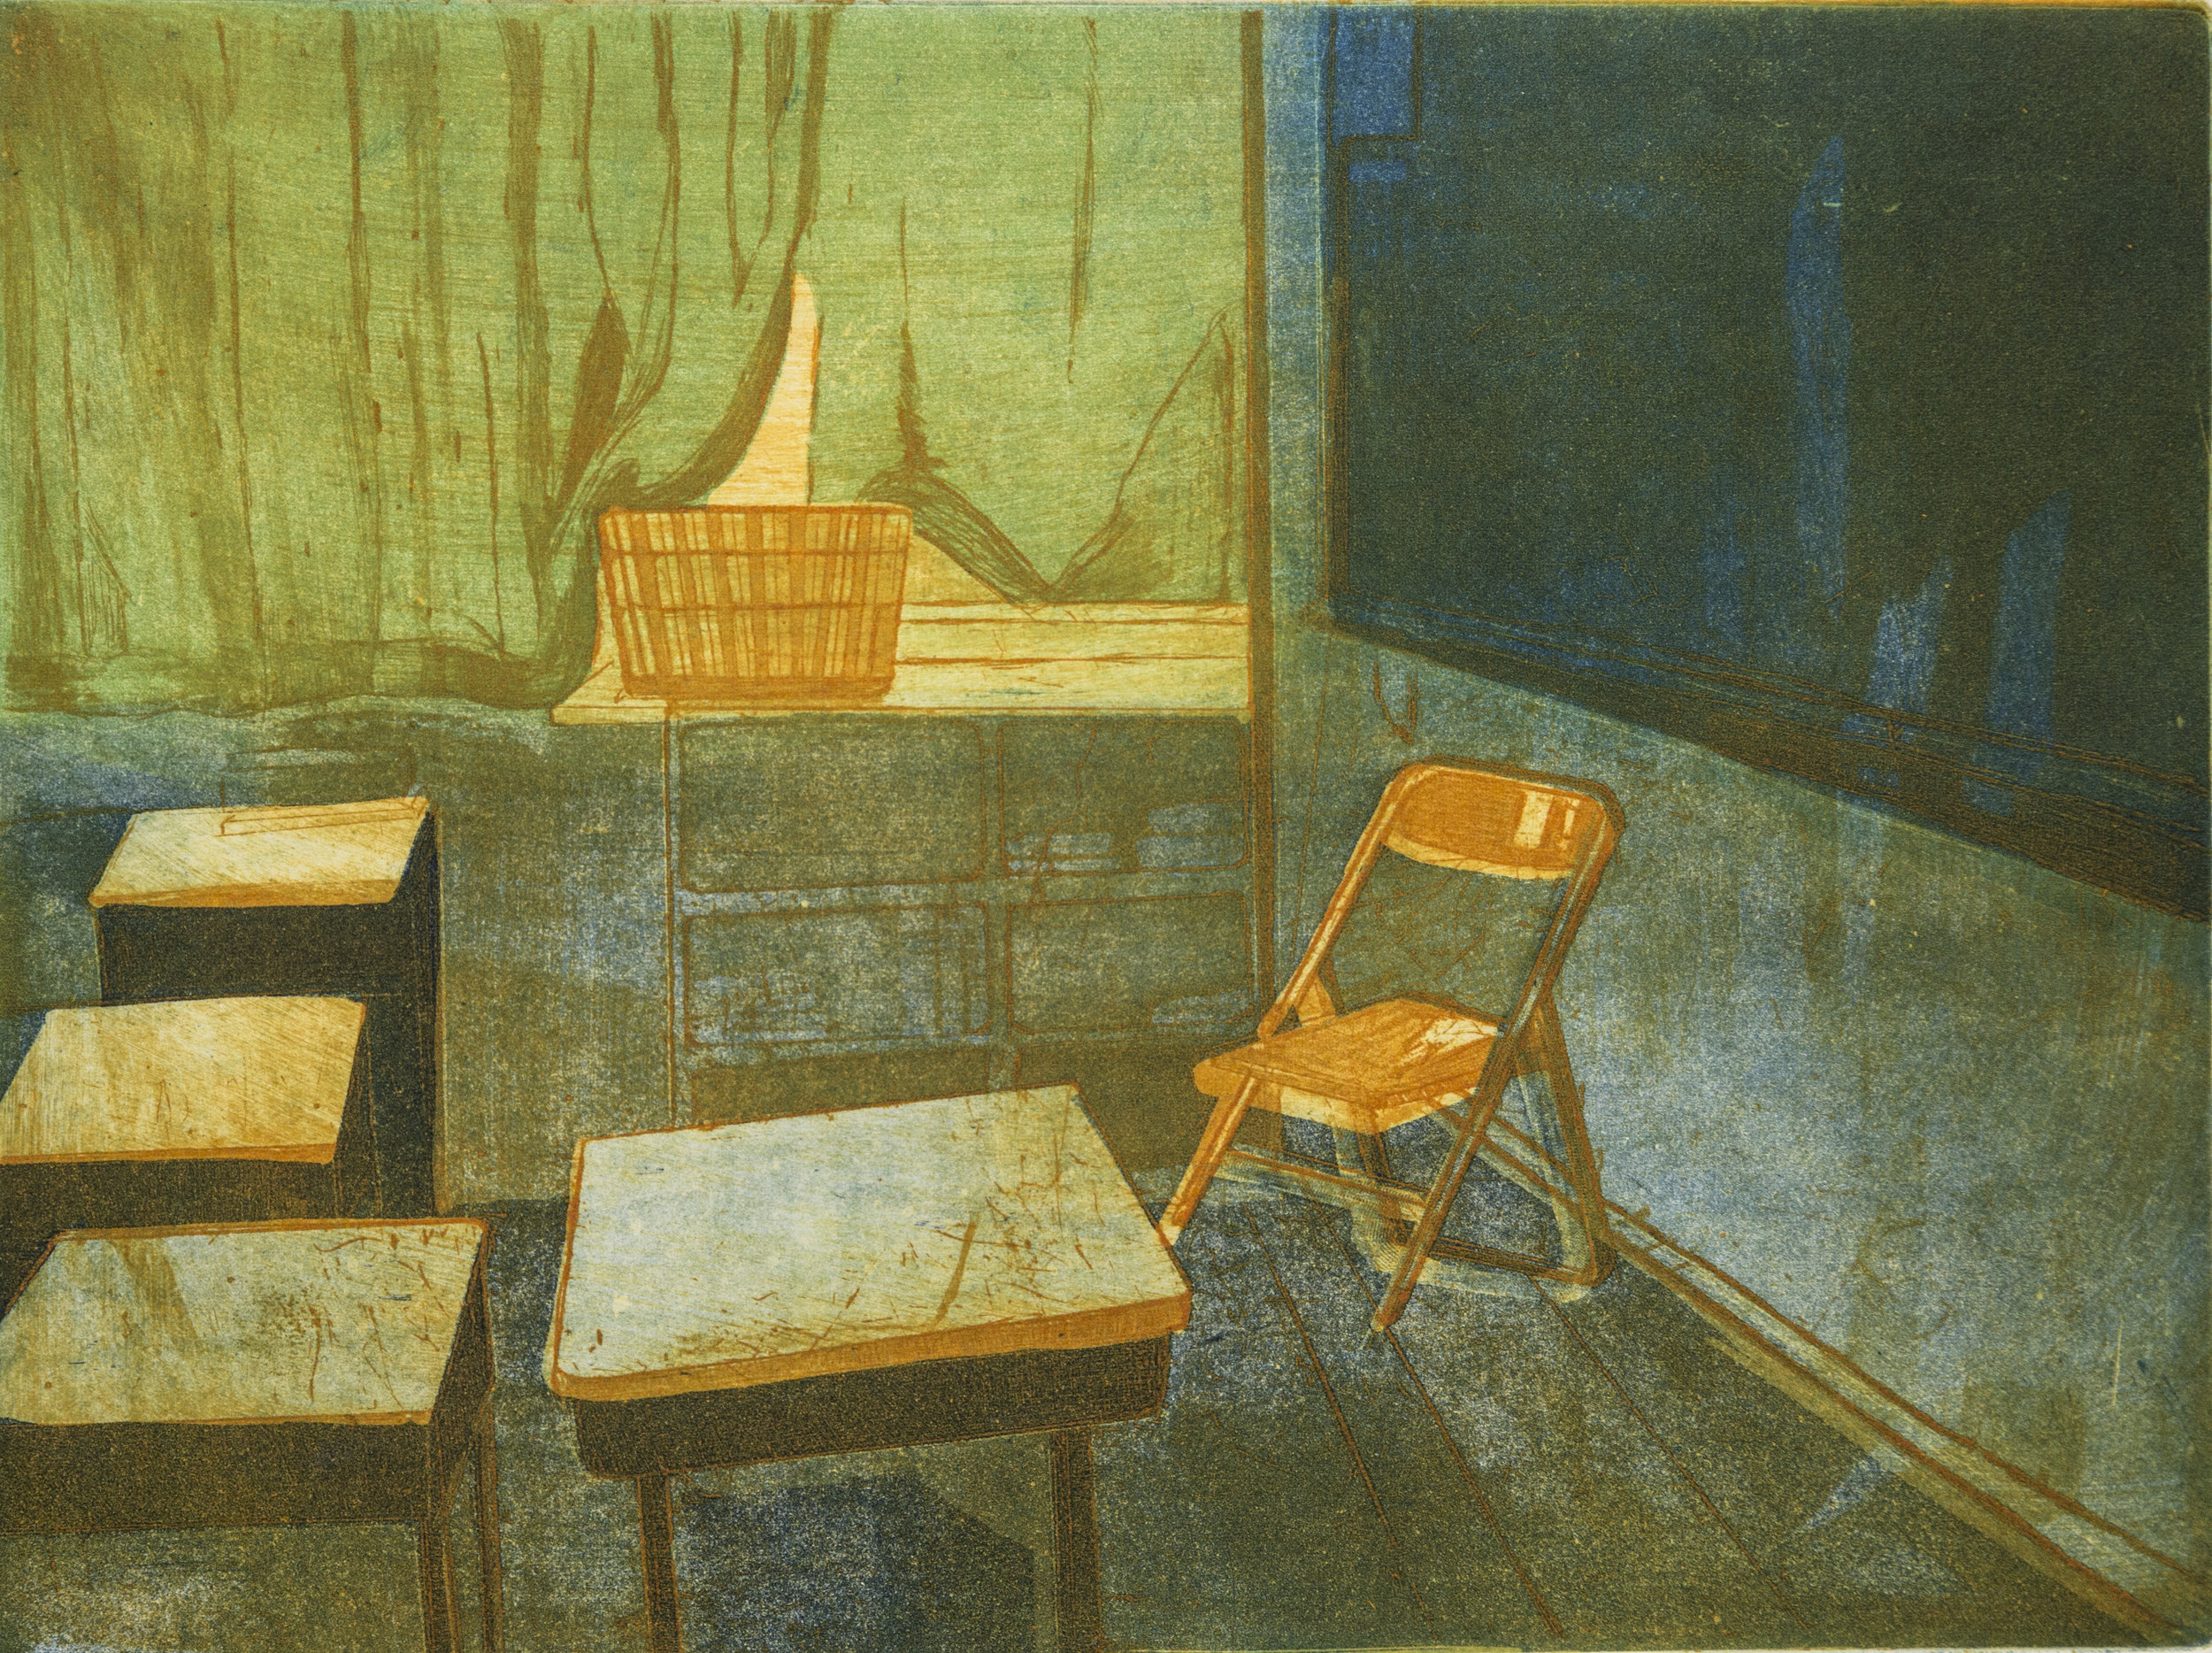 Afternoon   There is a sense of a normal, quiet afternoon in my high school, which often comes to mind. This work represents the quietness of the afternoon and my love of the place.  Etching on copper plate, Ink Size: 15 X 19(inches)